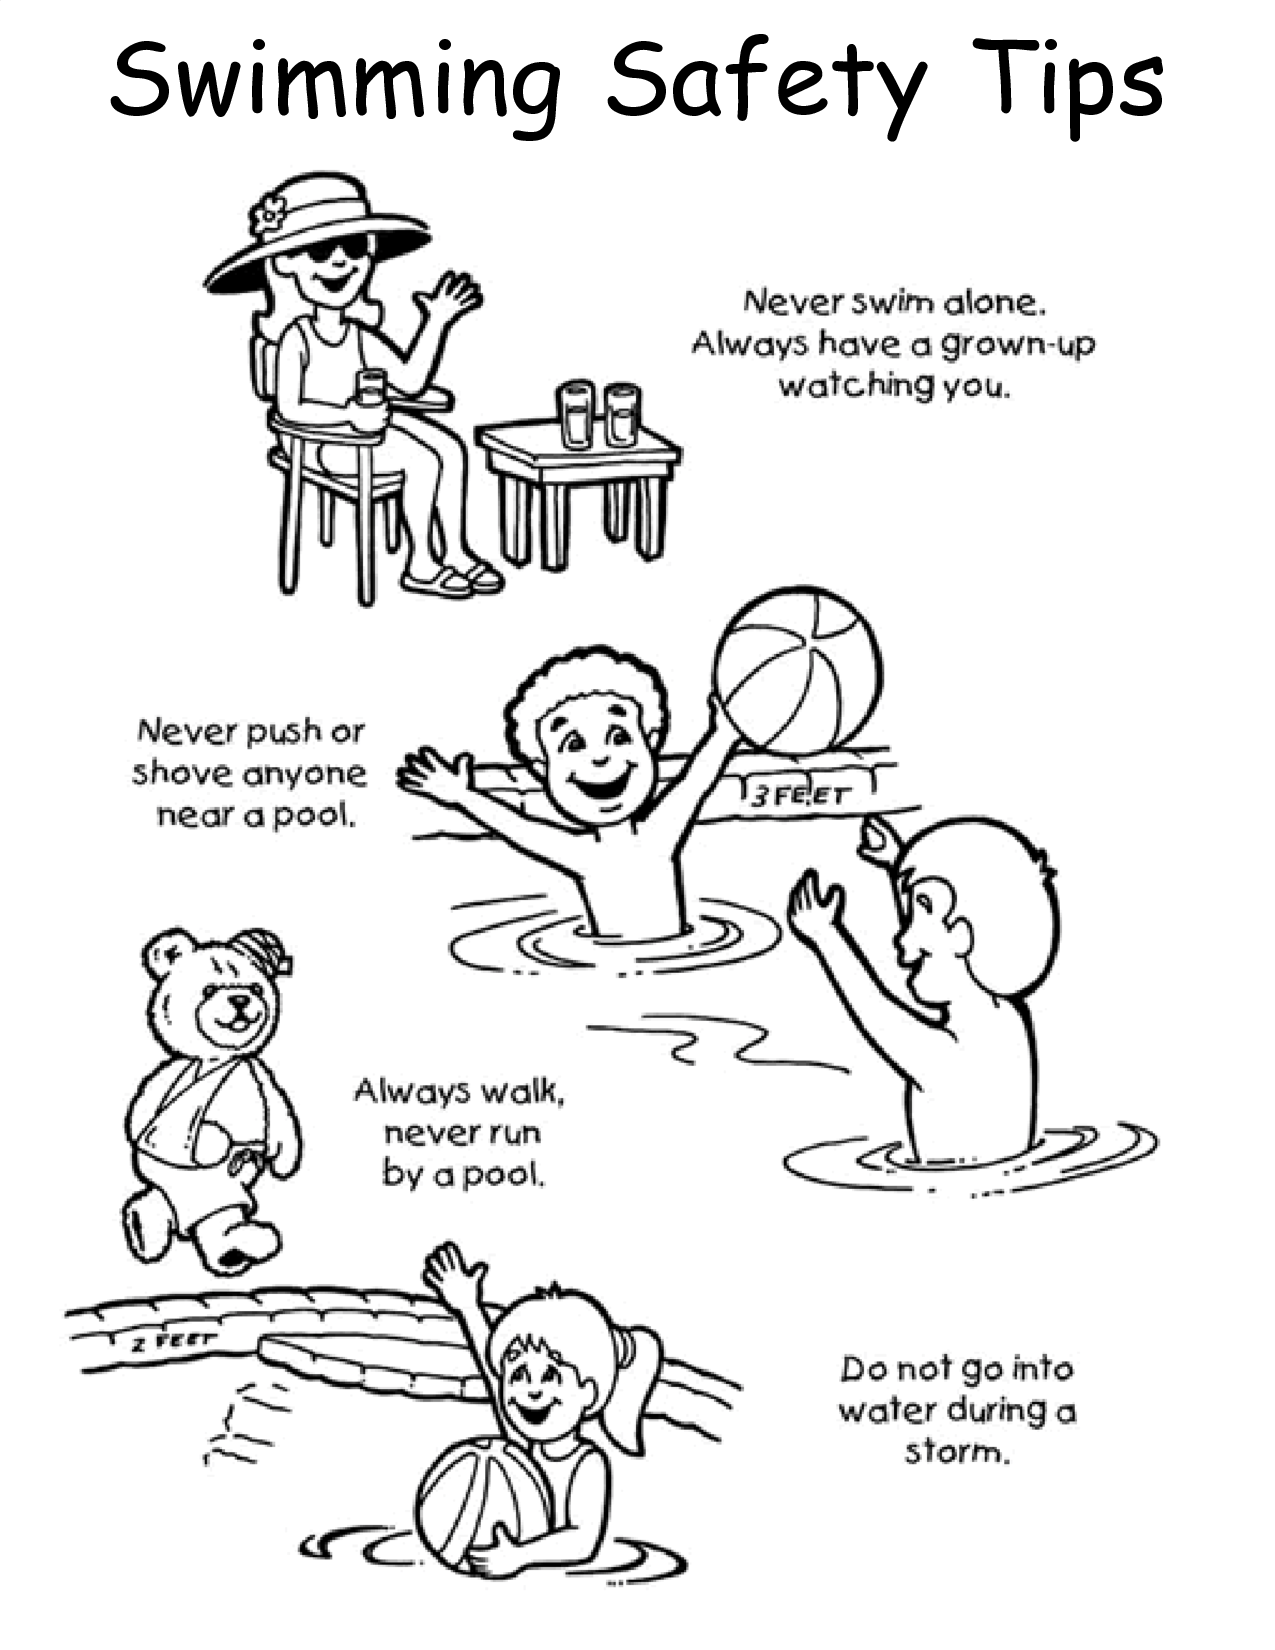 water safety code coloring book pages | Coloring Pages For Summer Safety | Swim lessons, Summer ...